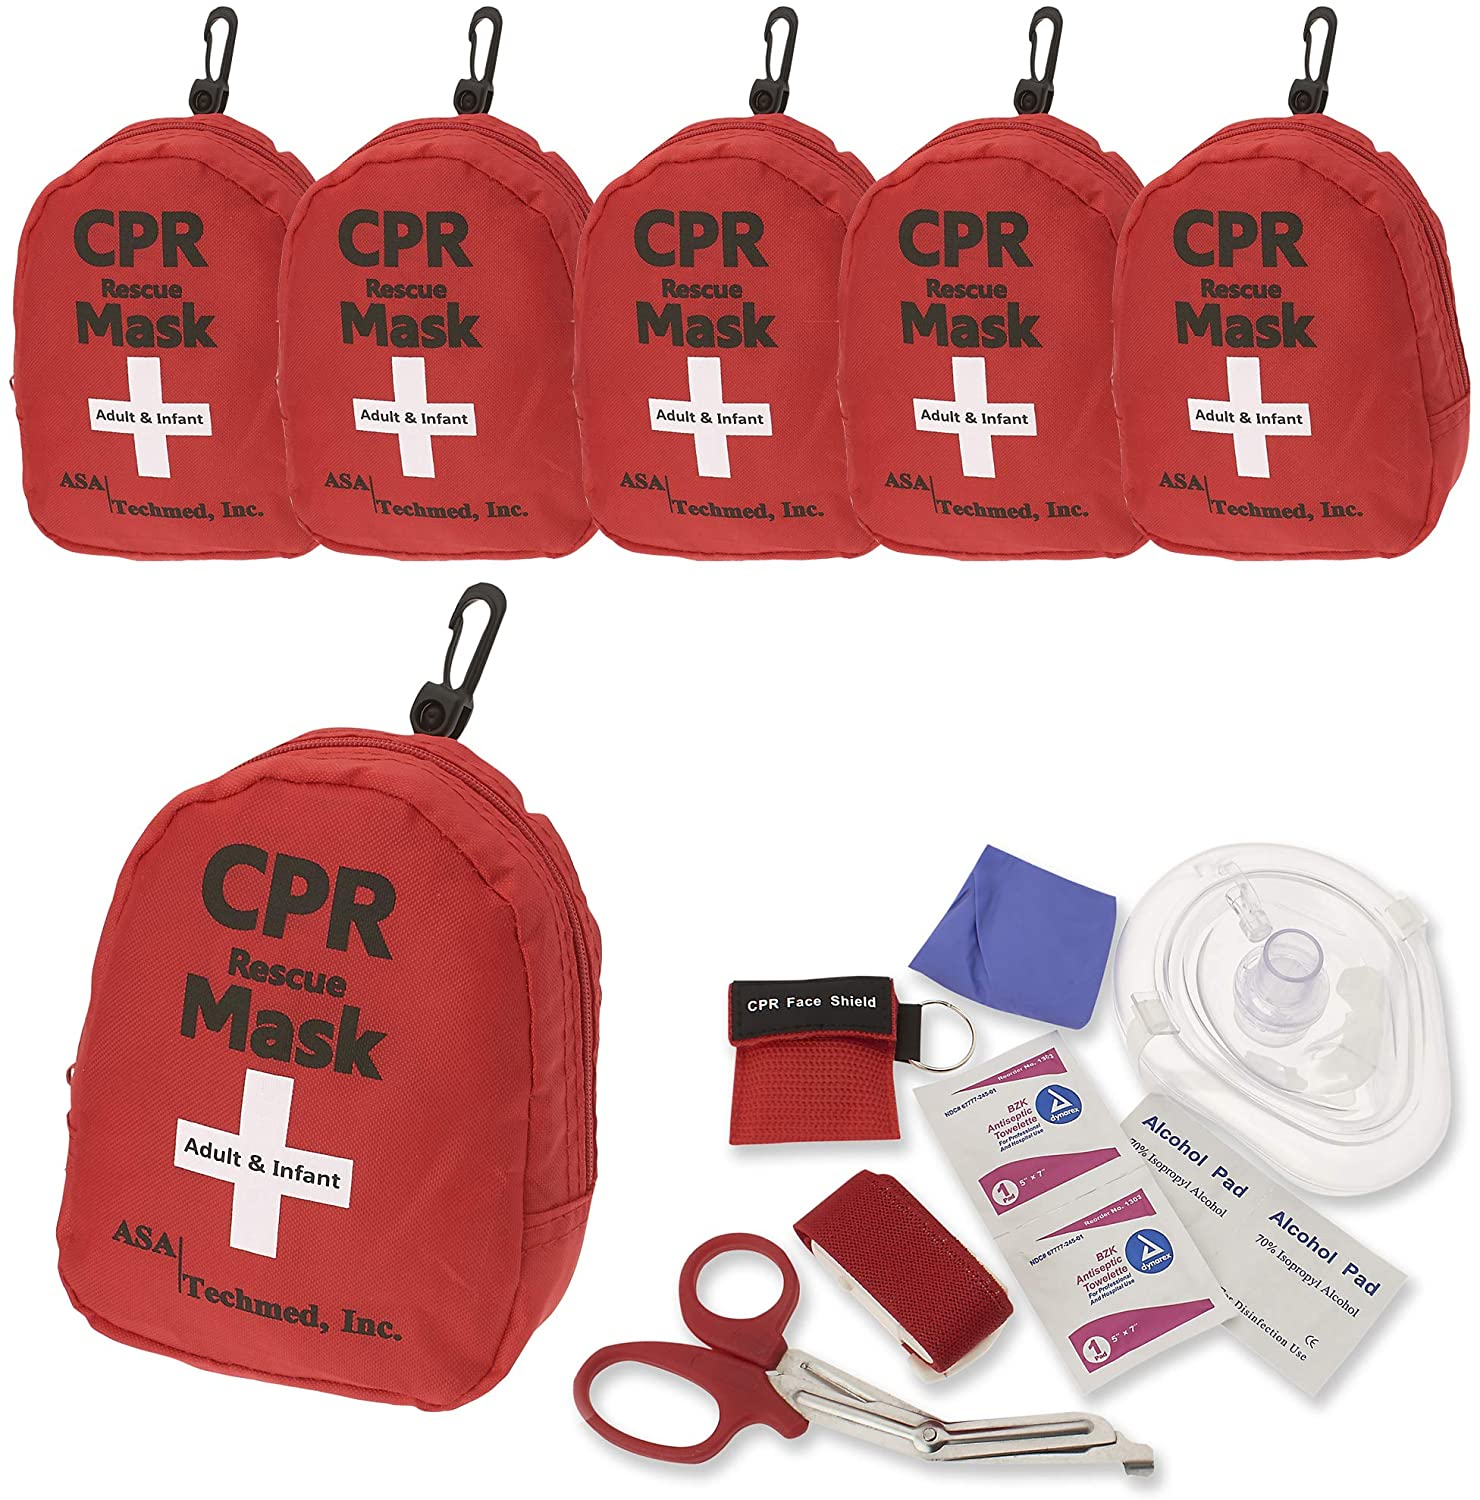 6 Pack Emergency First Aid Kit Max 86% OFF Pocket Mask CPR - Resusci Rescue Sales